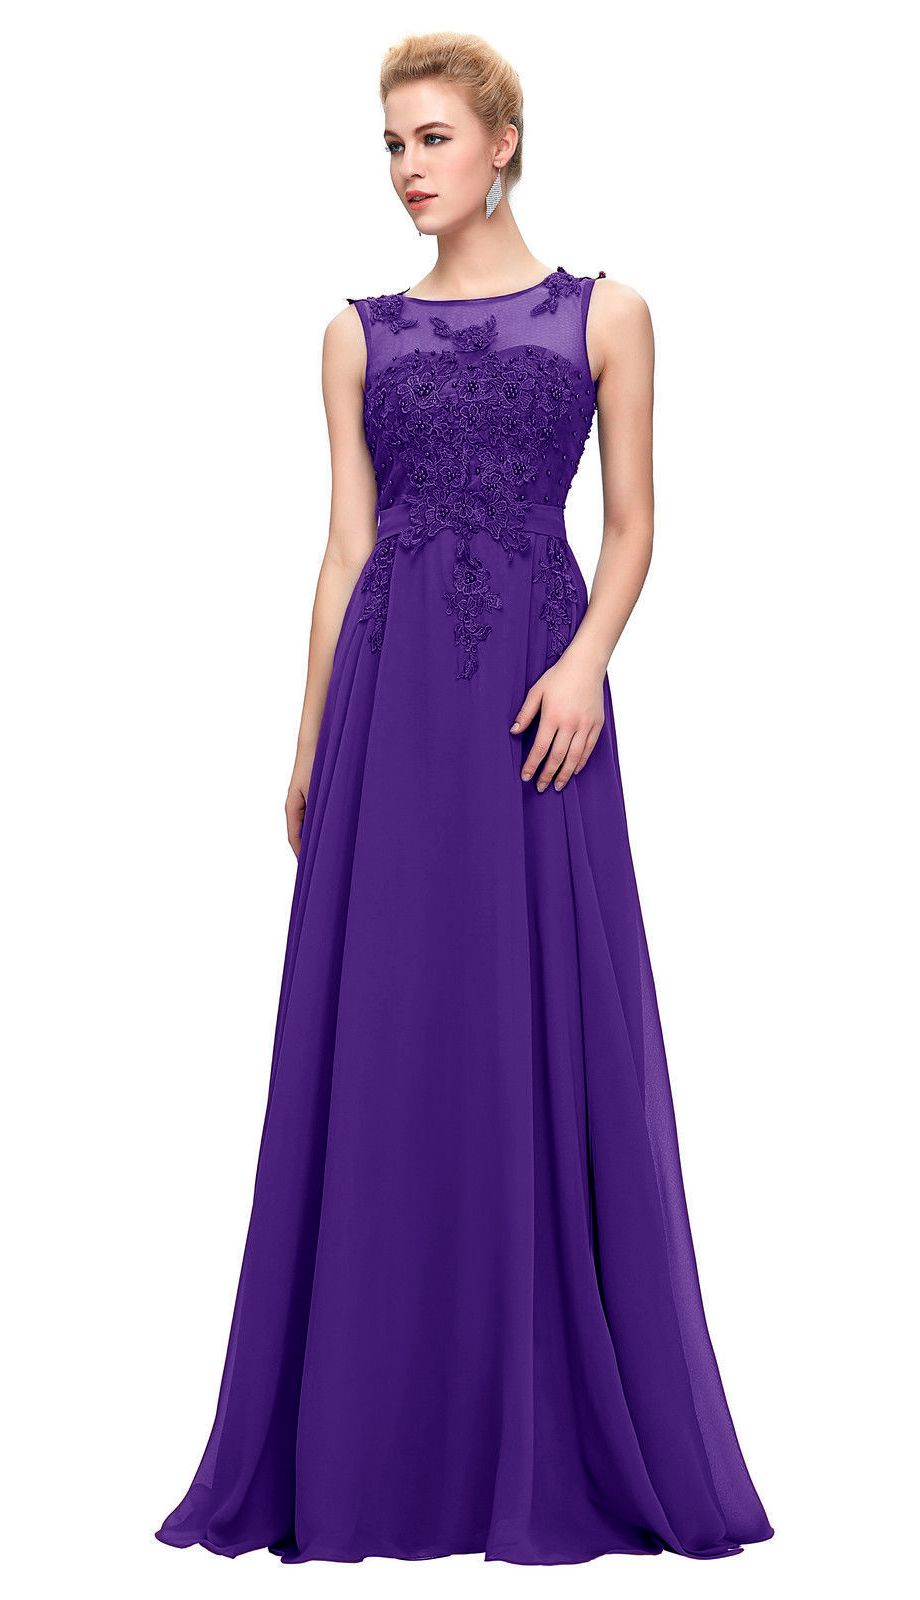 Adele cadbury purple embellished lace chiffon long evening bridesmaid prom dress loulous bridal boutique ltd uk